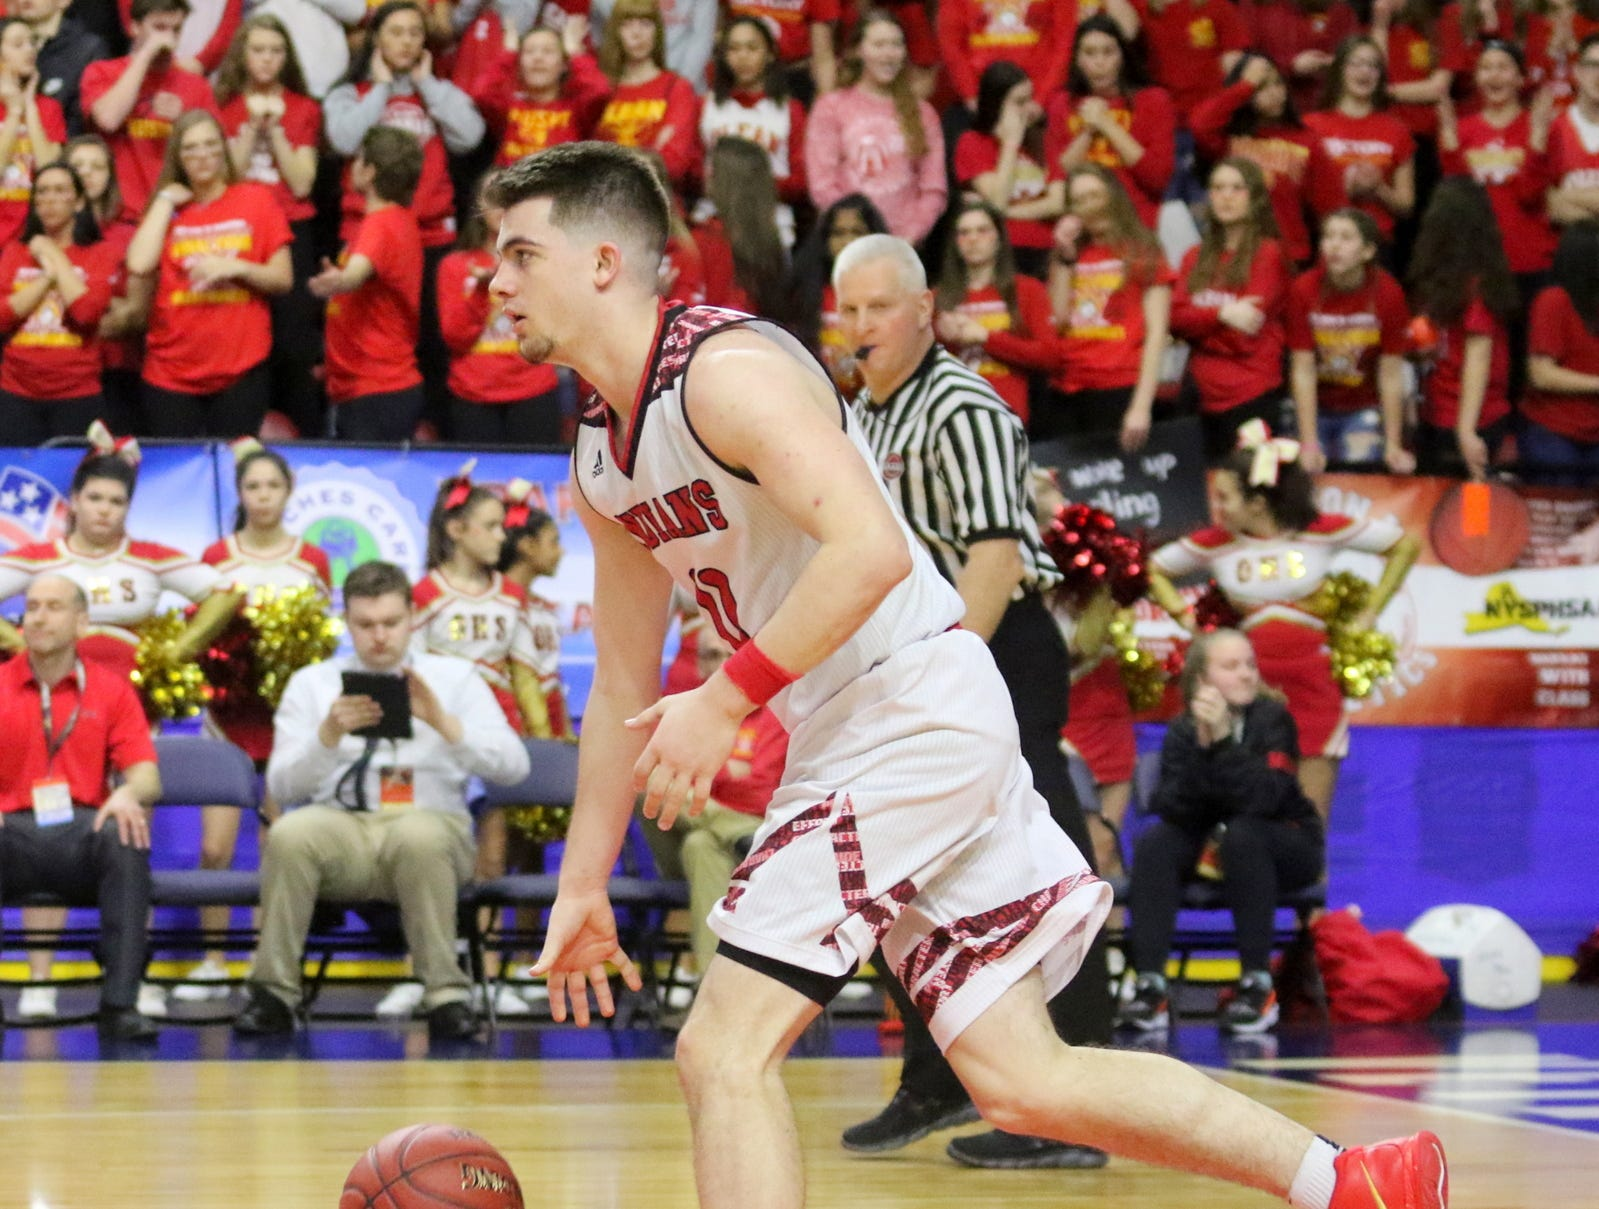 Joseph Girard III of Glens Falls takes the ball up the floor during an 83-63 win over Olean in a Class B boys basketball state semifinal March 15, 2019 at Floyd L. Maines Veterans Memorial Arena in Binghamton.